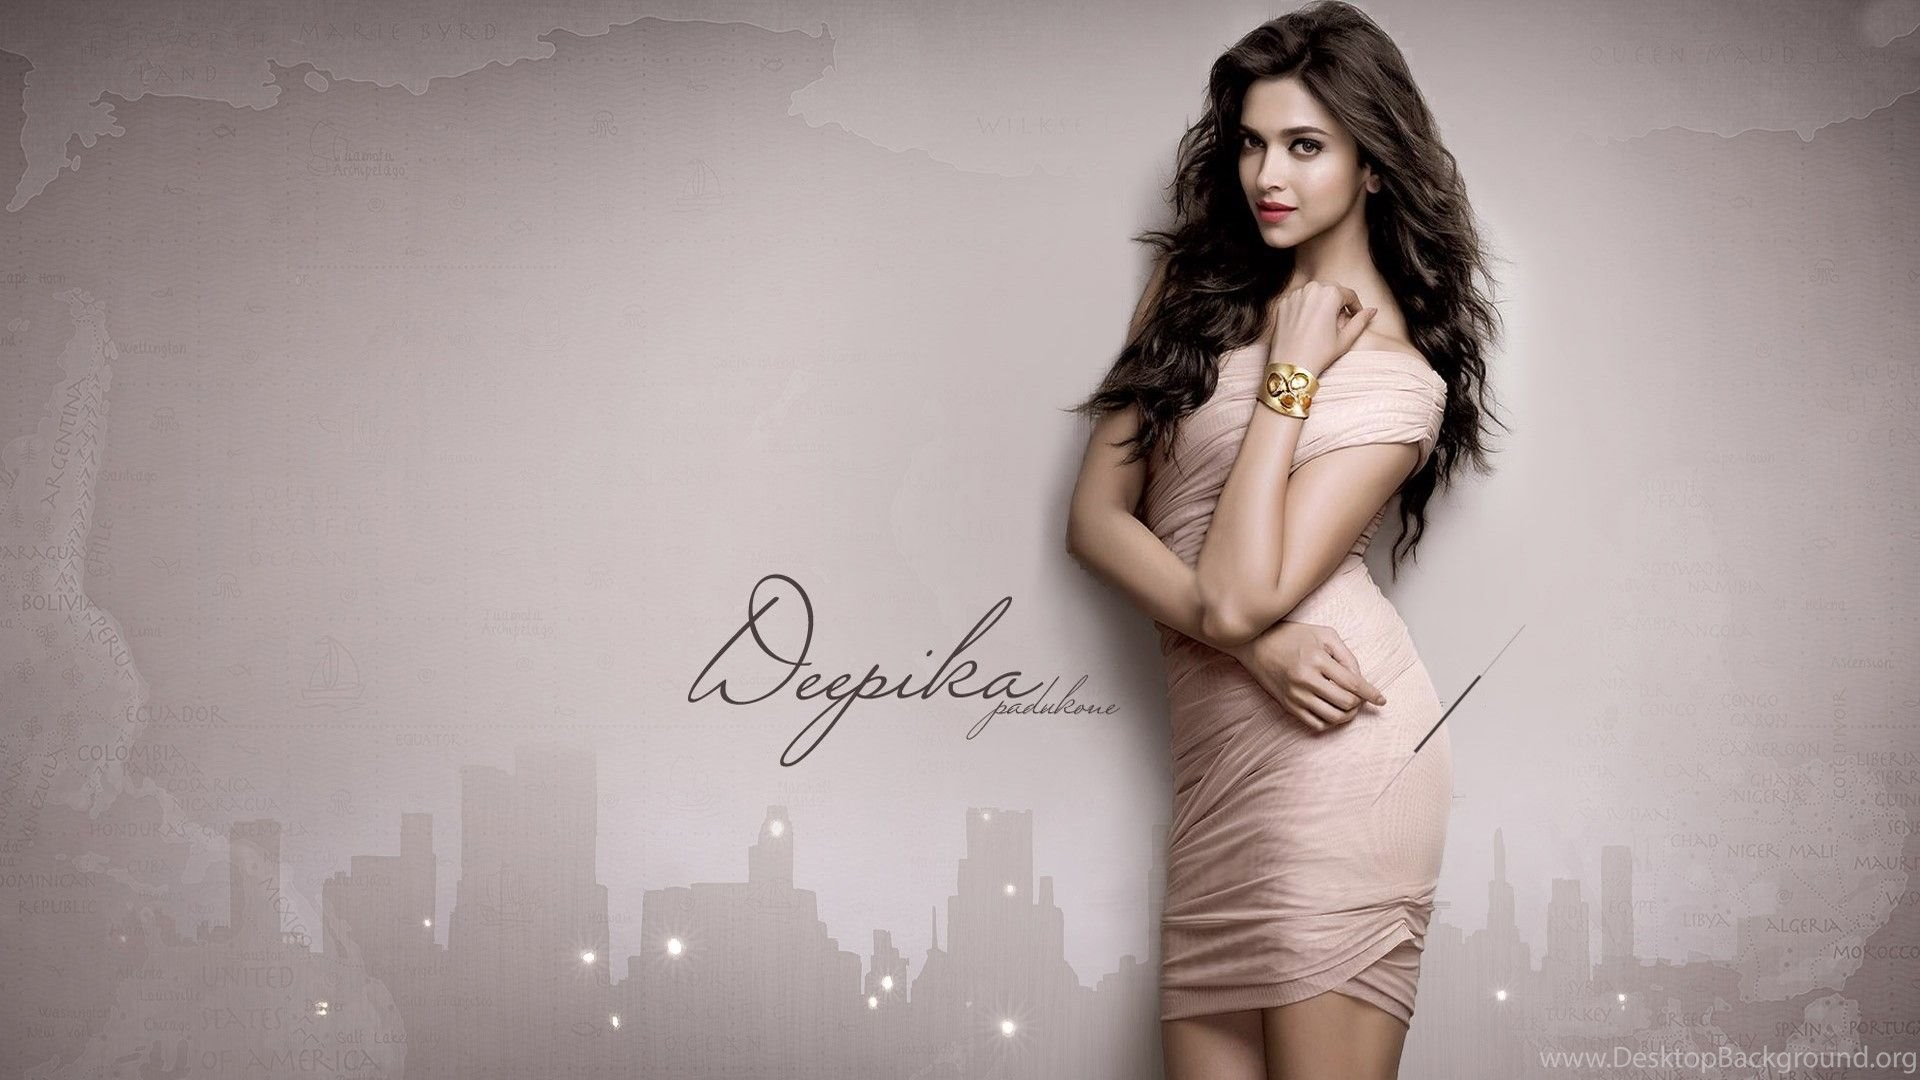 hot deepika padukone hd wallpapers, photoshoot, images desktop